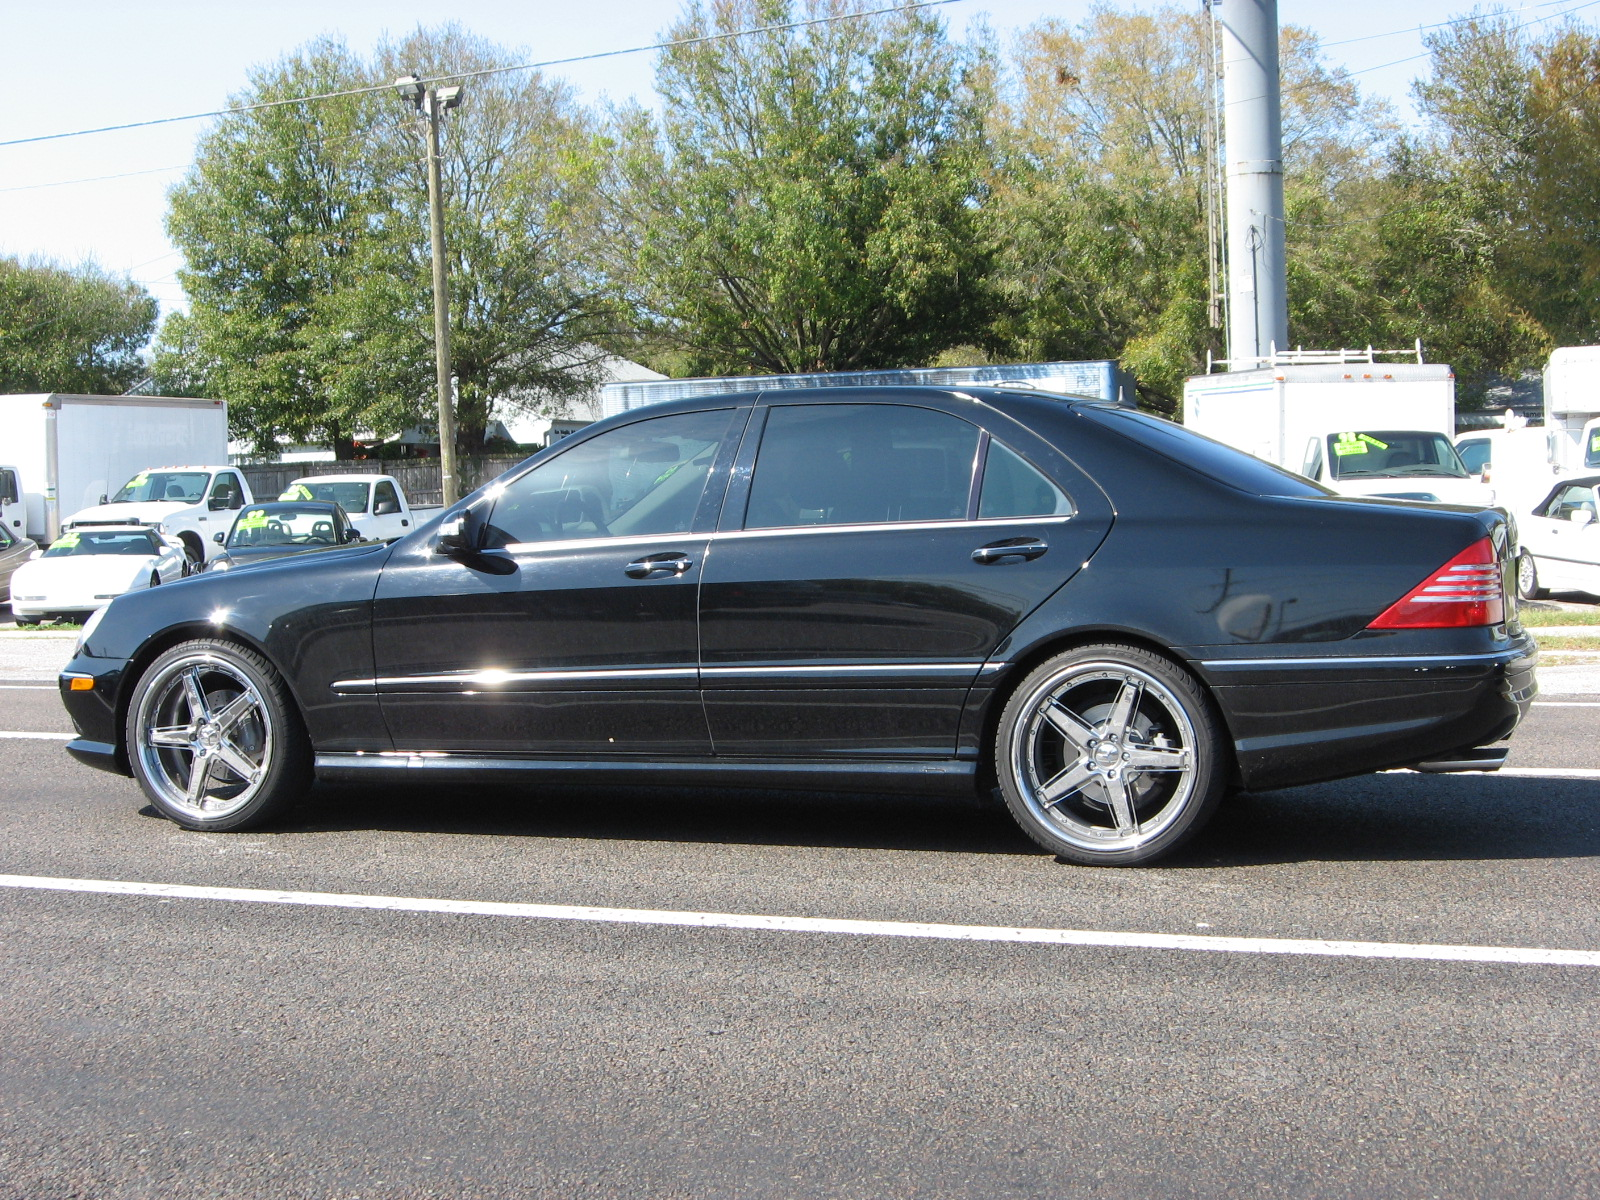 2005 mercedes benz s class image 9 for Mercedes benz suv 2005